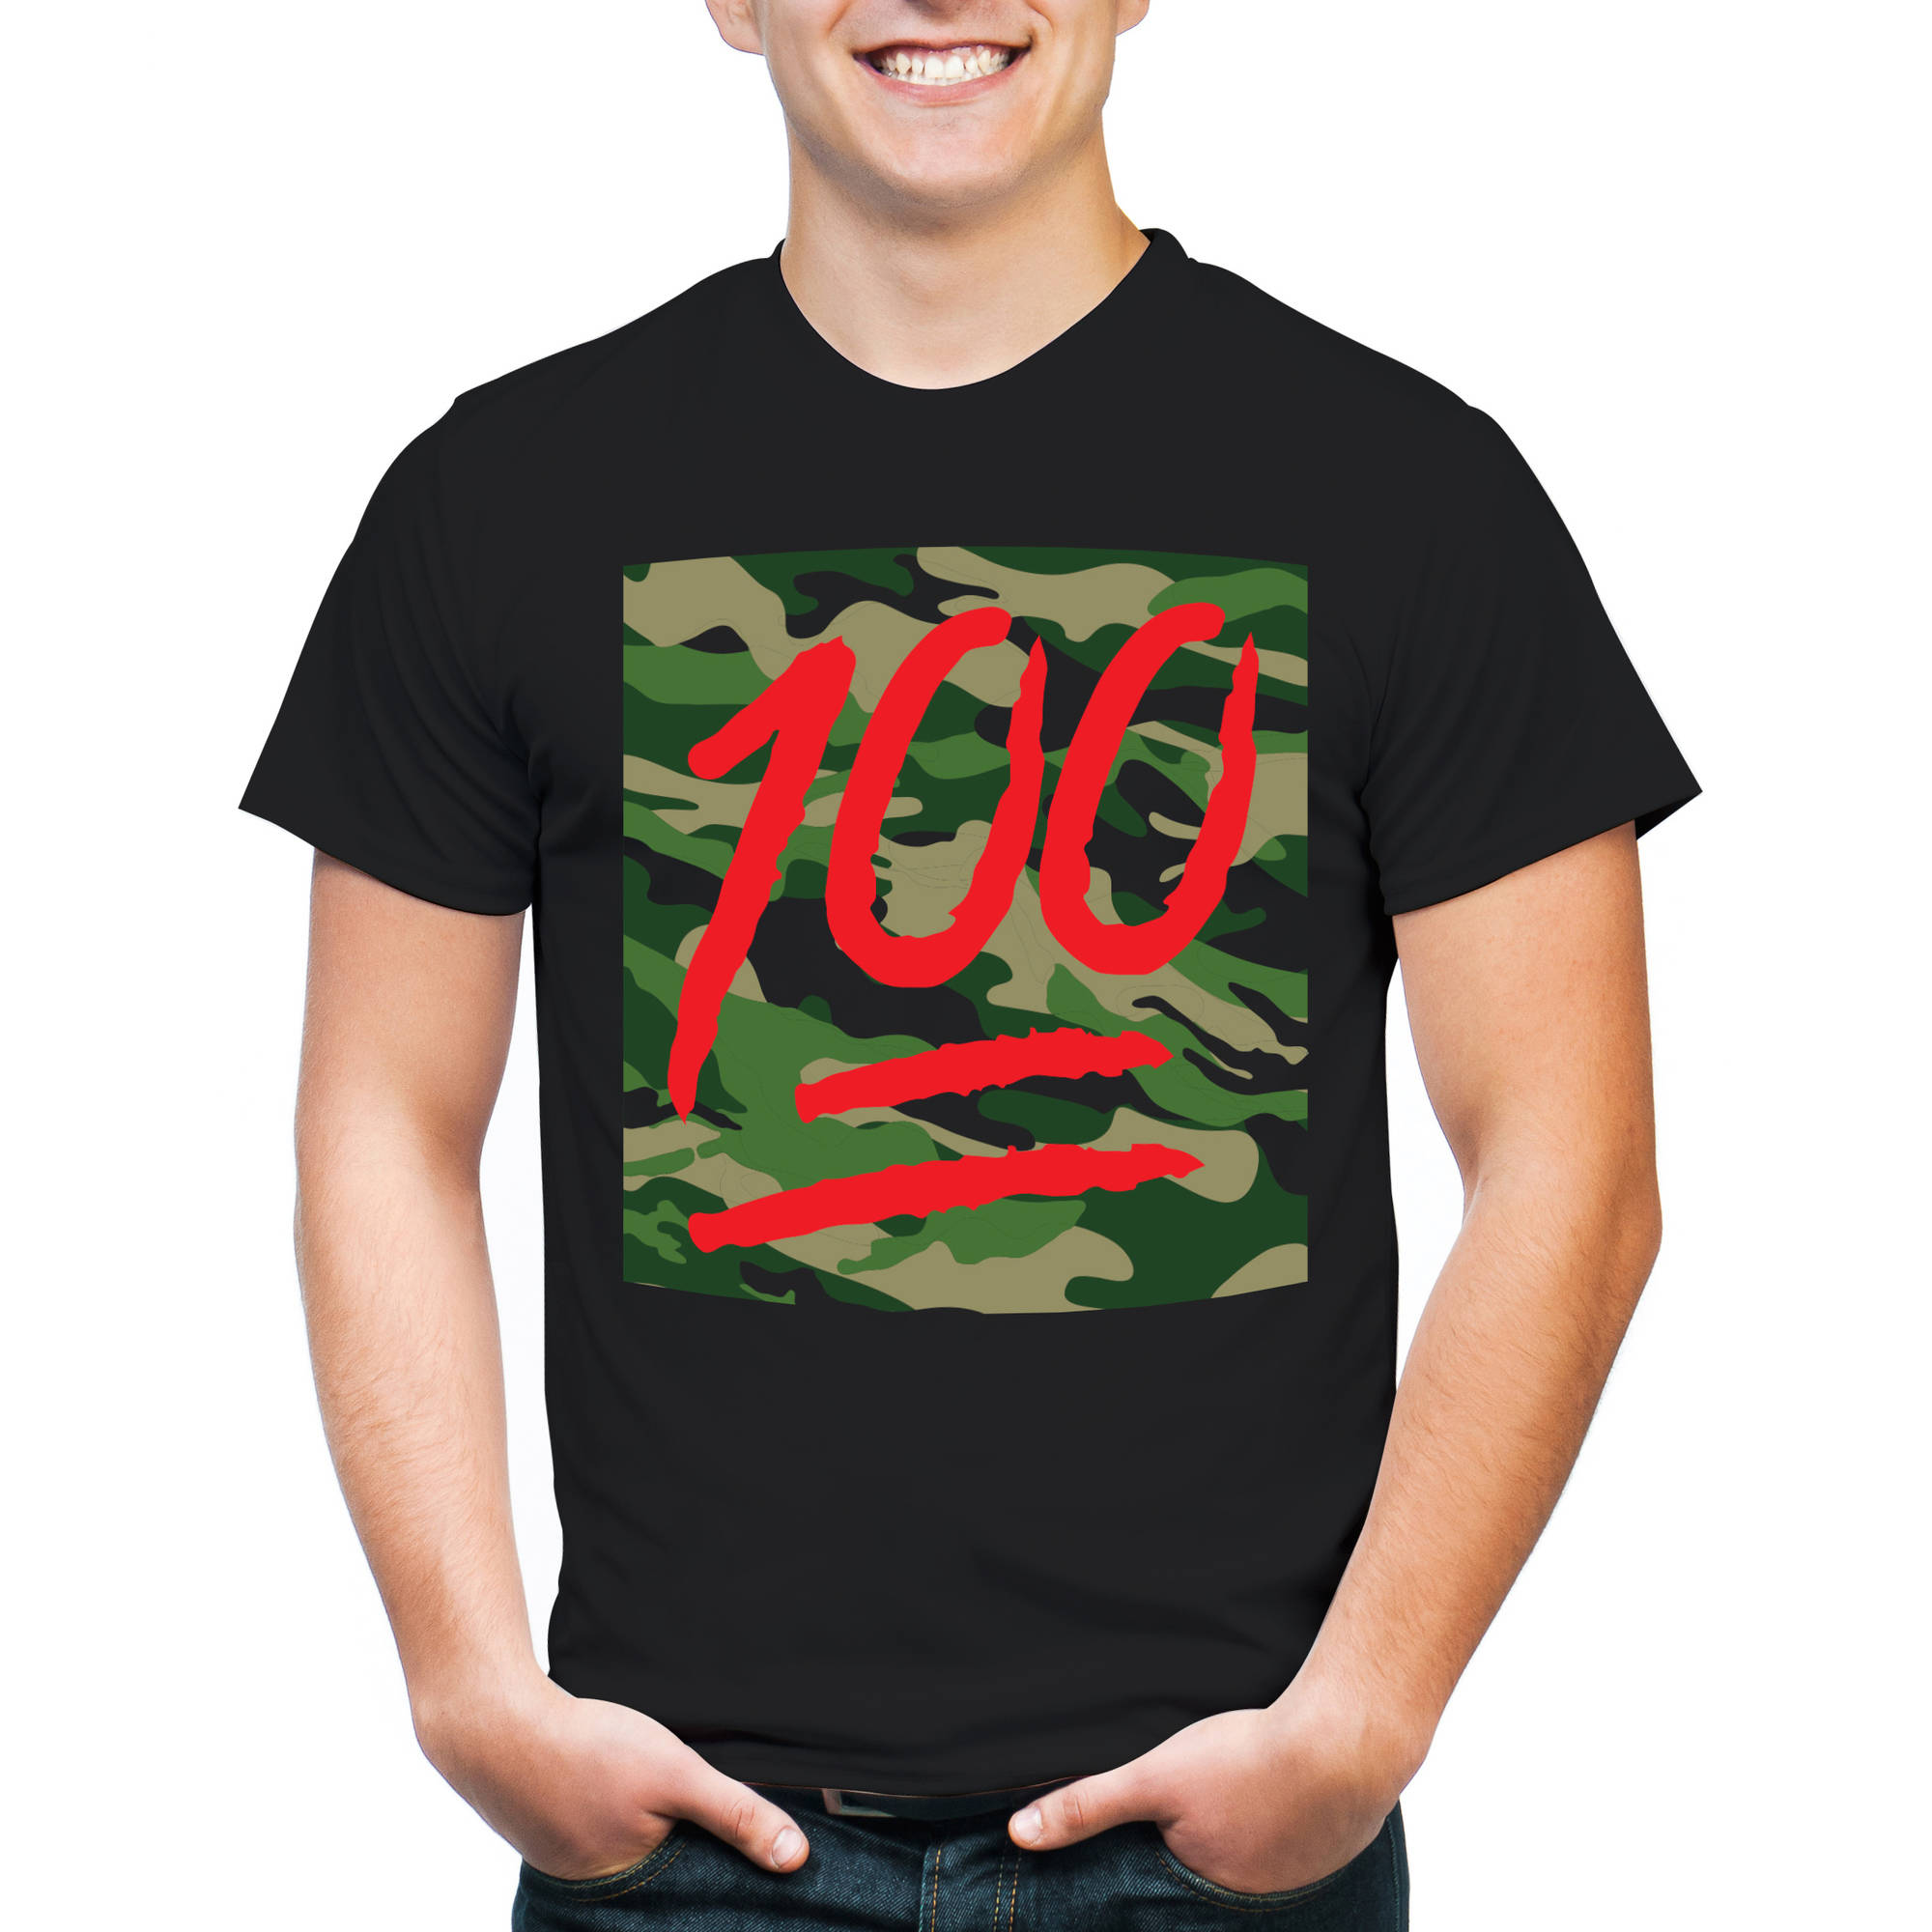 100 With Camo Background Big Men's Graphic Tee, 2XL